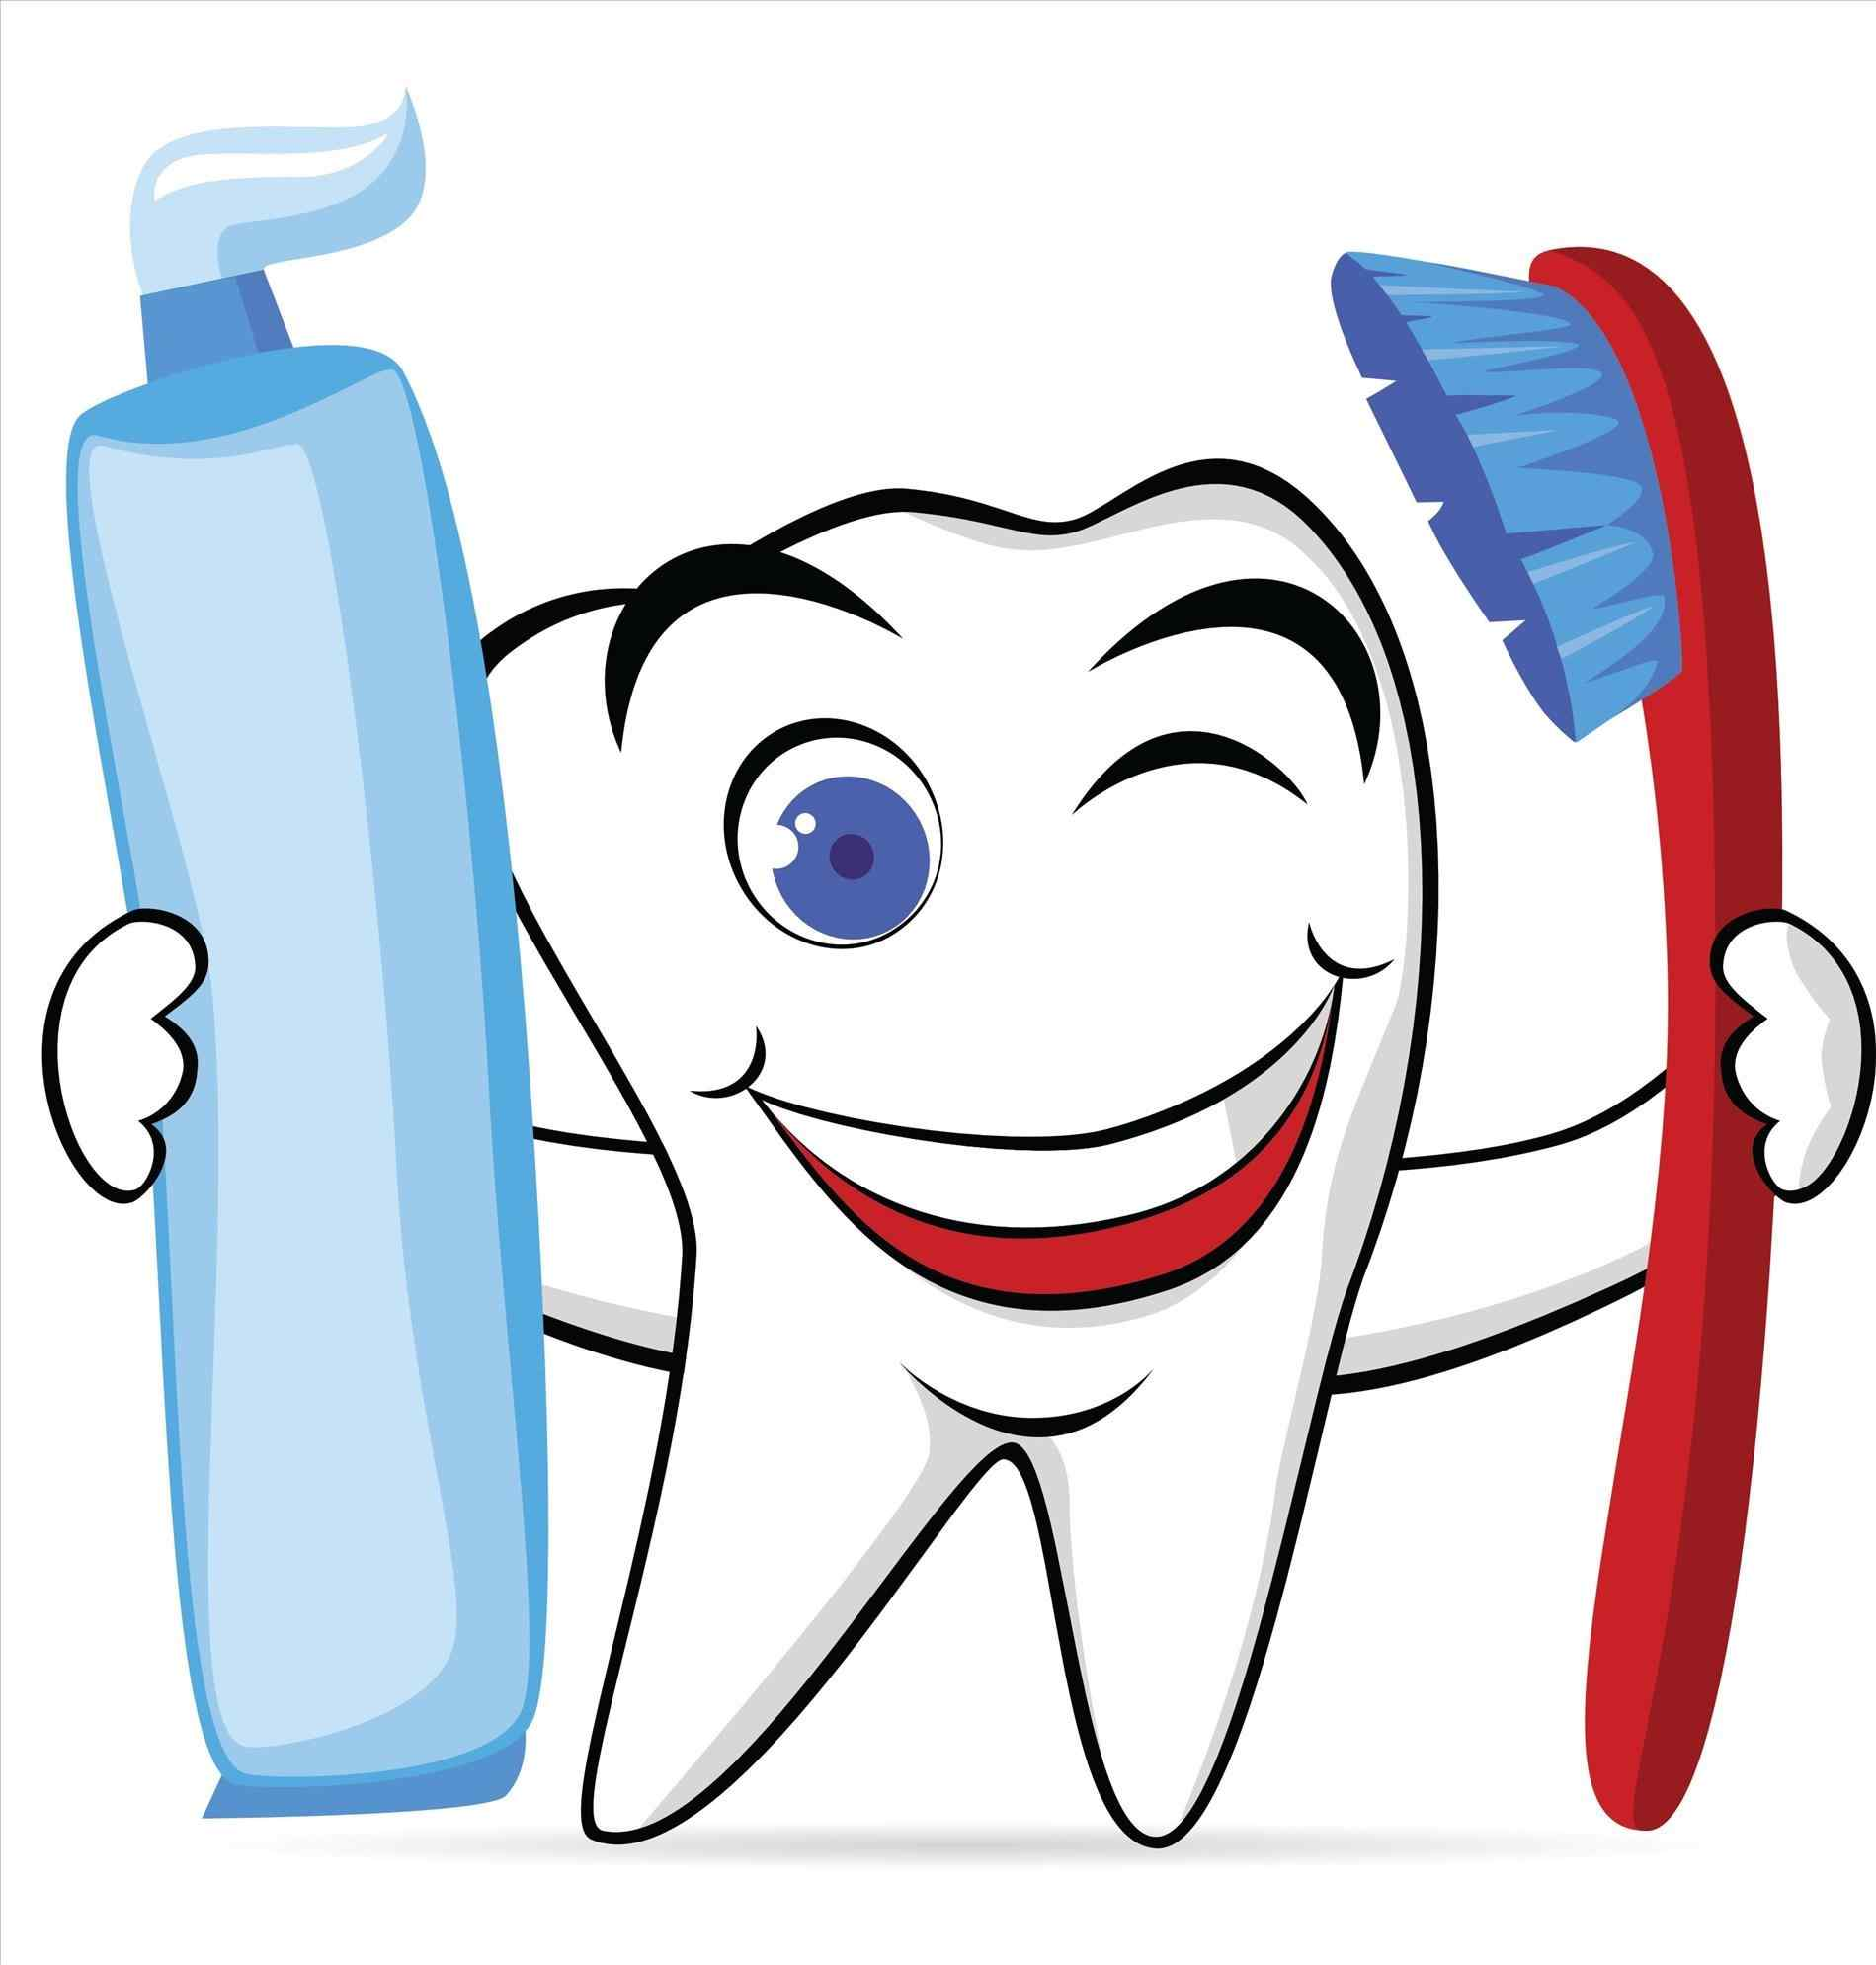 Dental hygiene clipart banner royalty free Dental hygiene clipart 7 » Clipart Station banner royalty free